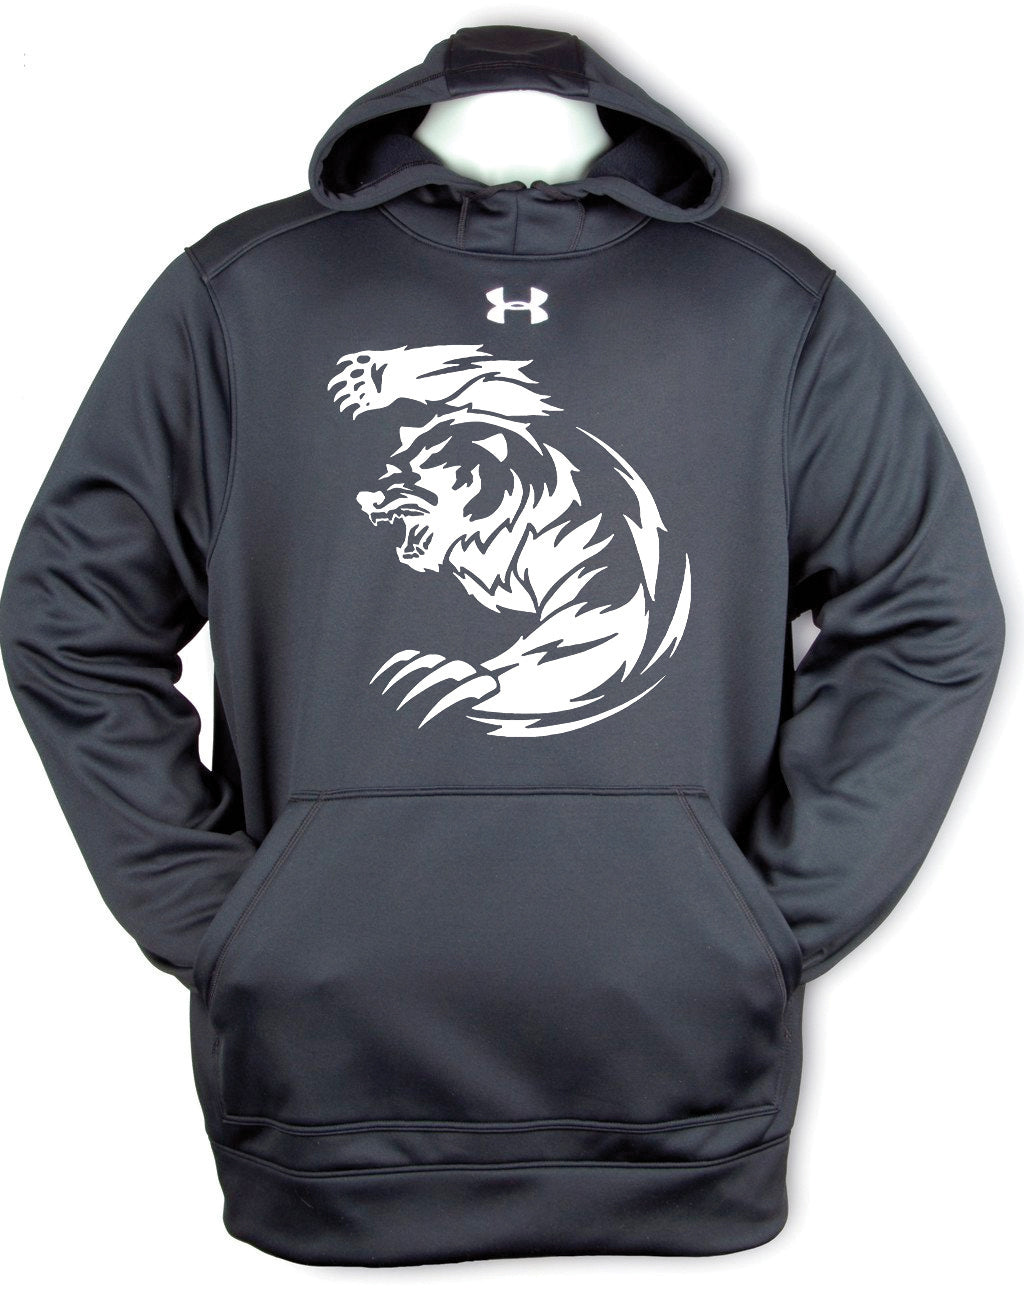 Unisex Under Armour Printed Tribal Grizzly Bear Hoody